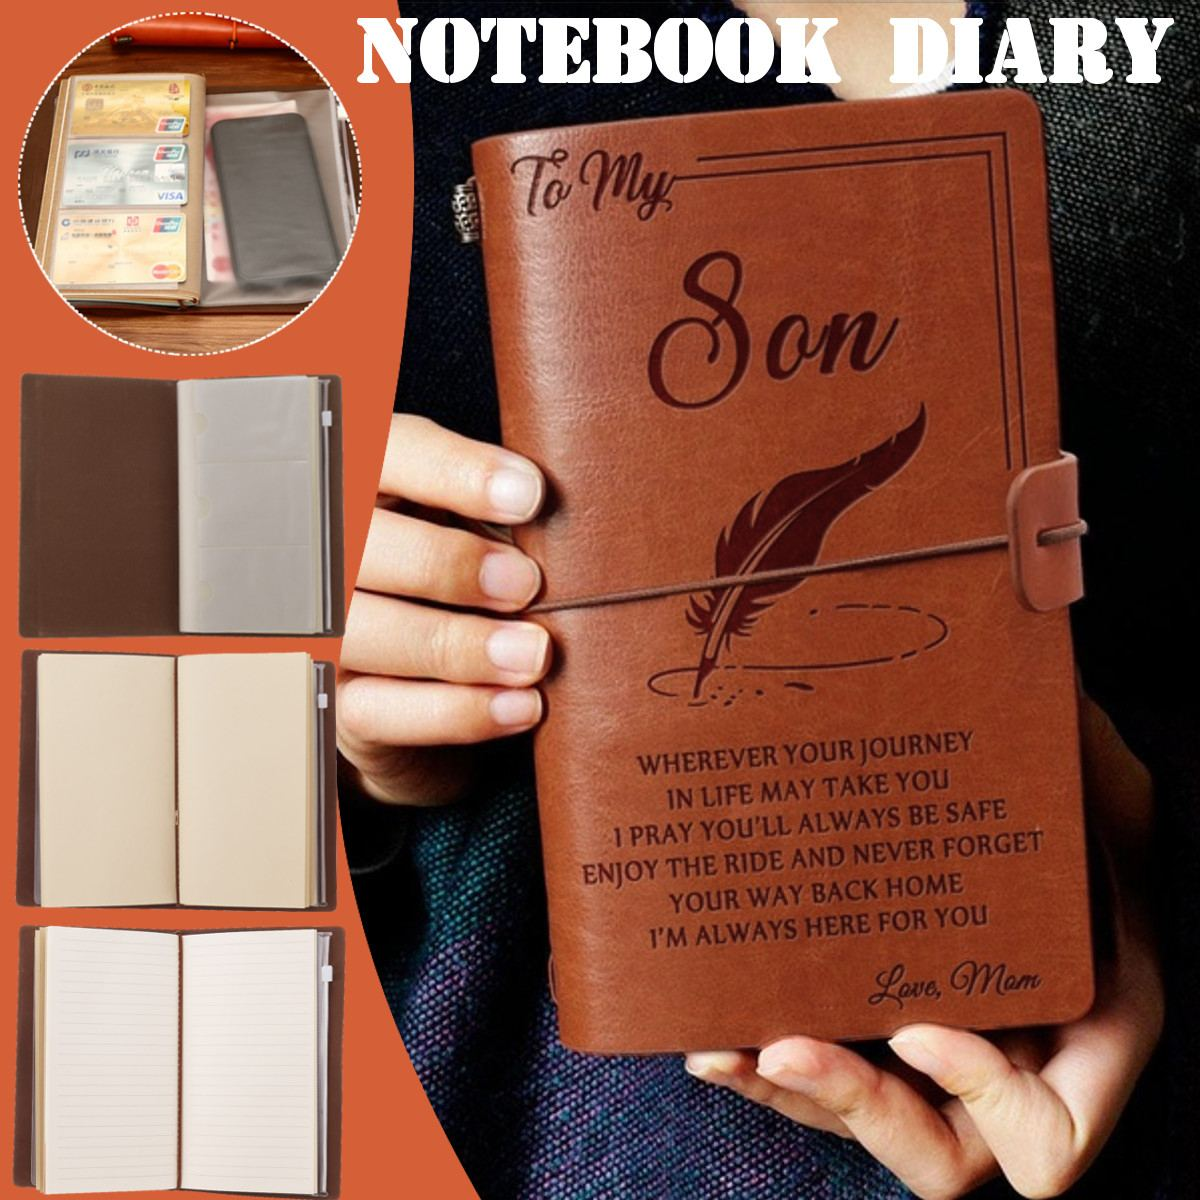 4 Types Engraved Leather Journal Notebook Diary To Daughter/Son/My Man/Wife Engraved Notebook Diary 20x12cm New